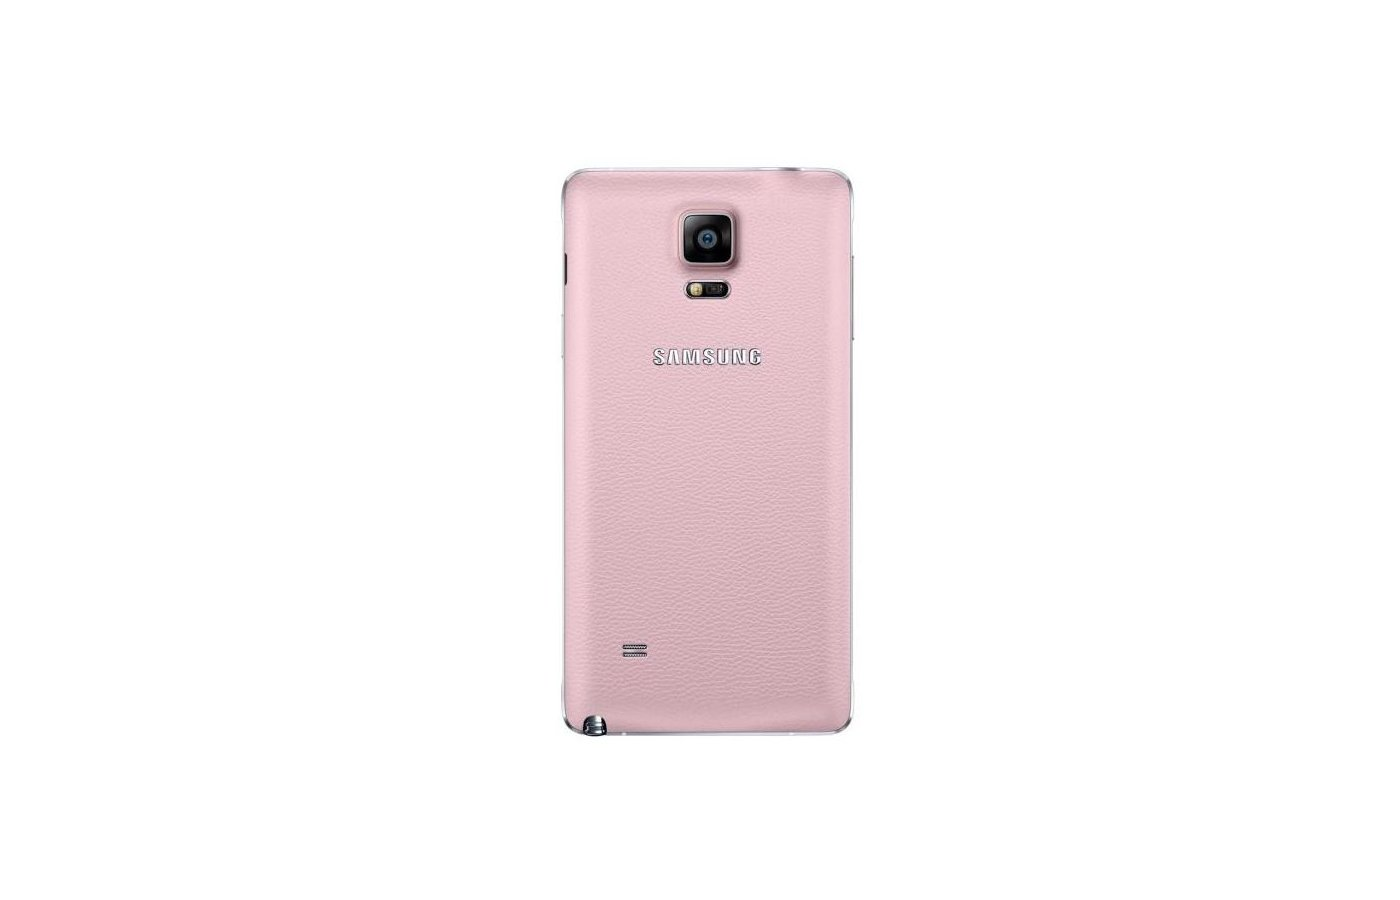 Чехол Samsung BackCover для Galaxy Note 4 (SM-N910) (EF-ON910SPEGRU) розовый